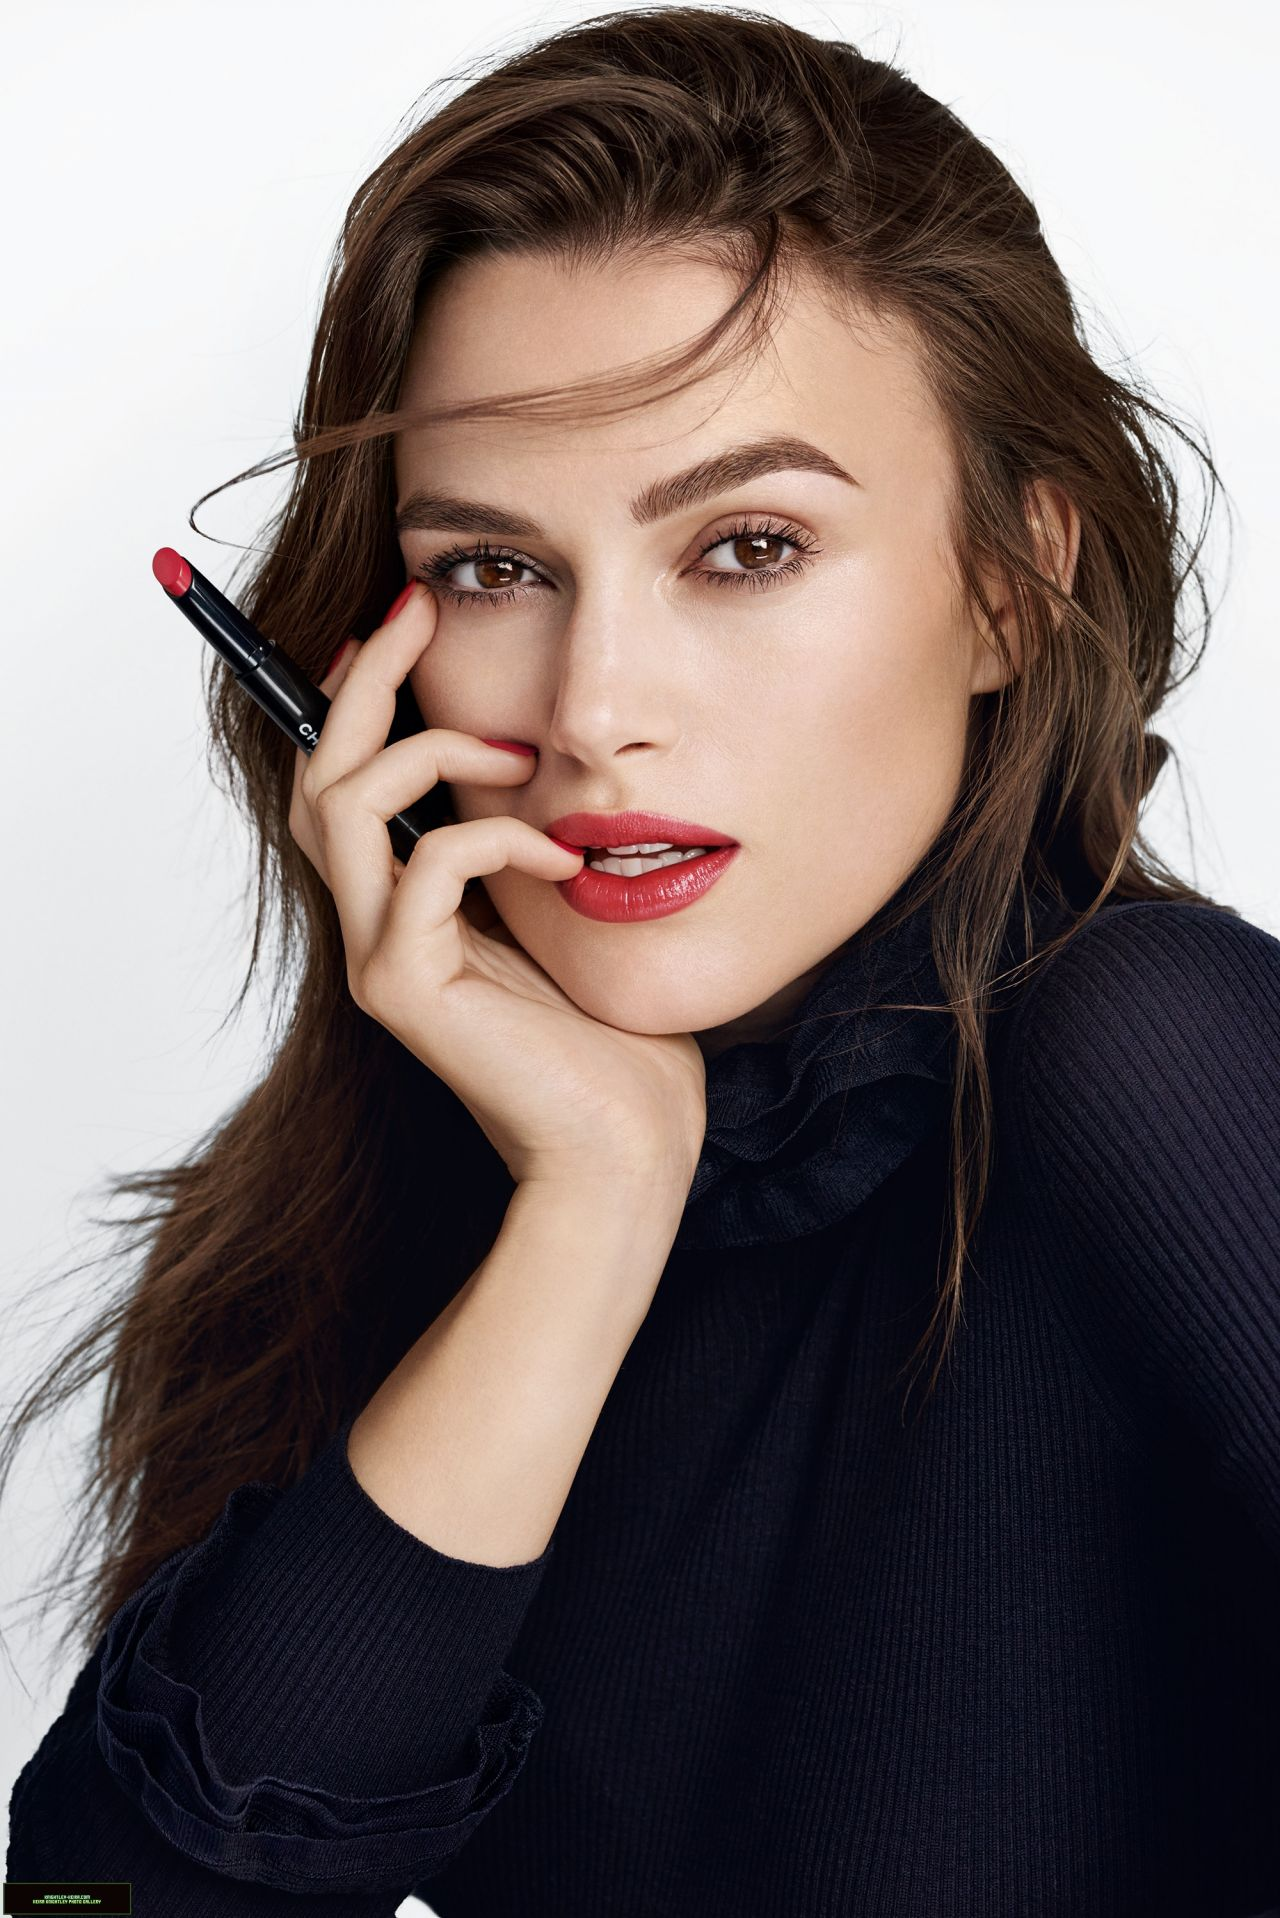 Keira Knightley – Chanel Rouge Coco Lipstick Photoshoot 2016 Keira Knightley